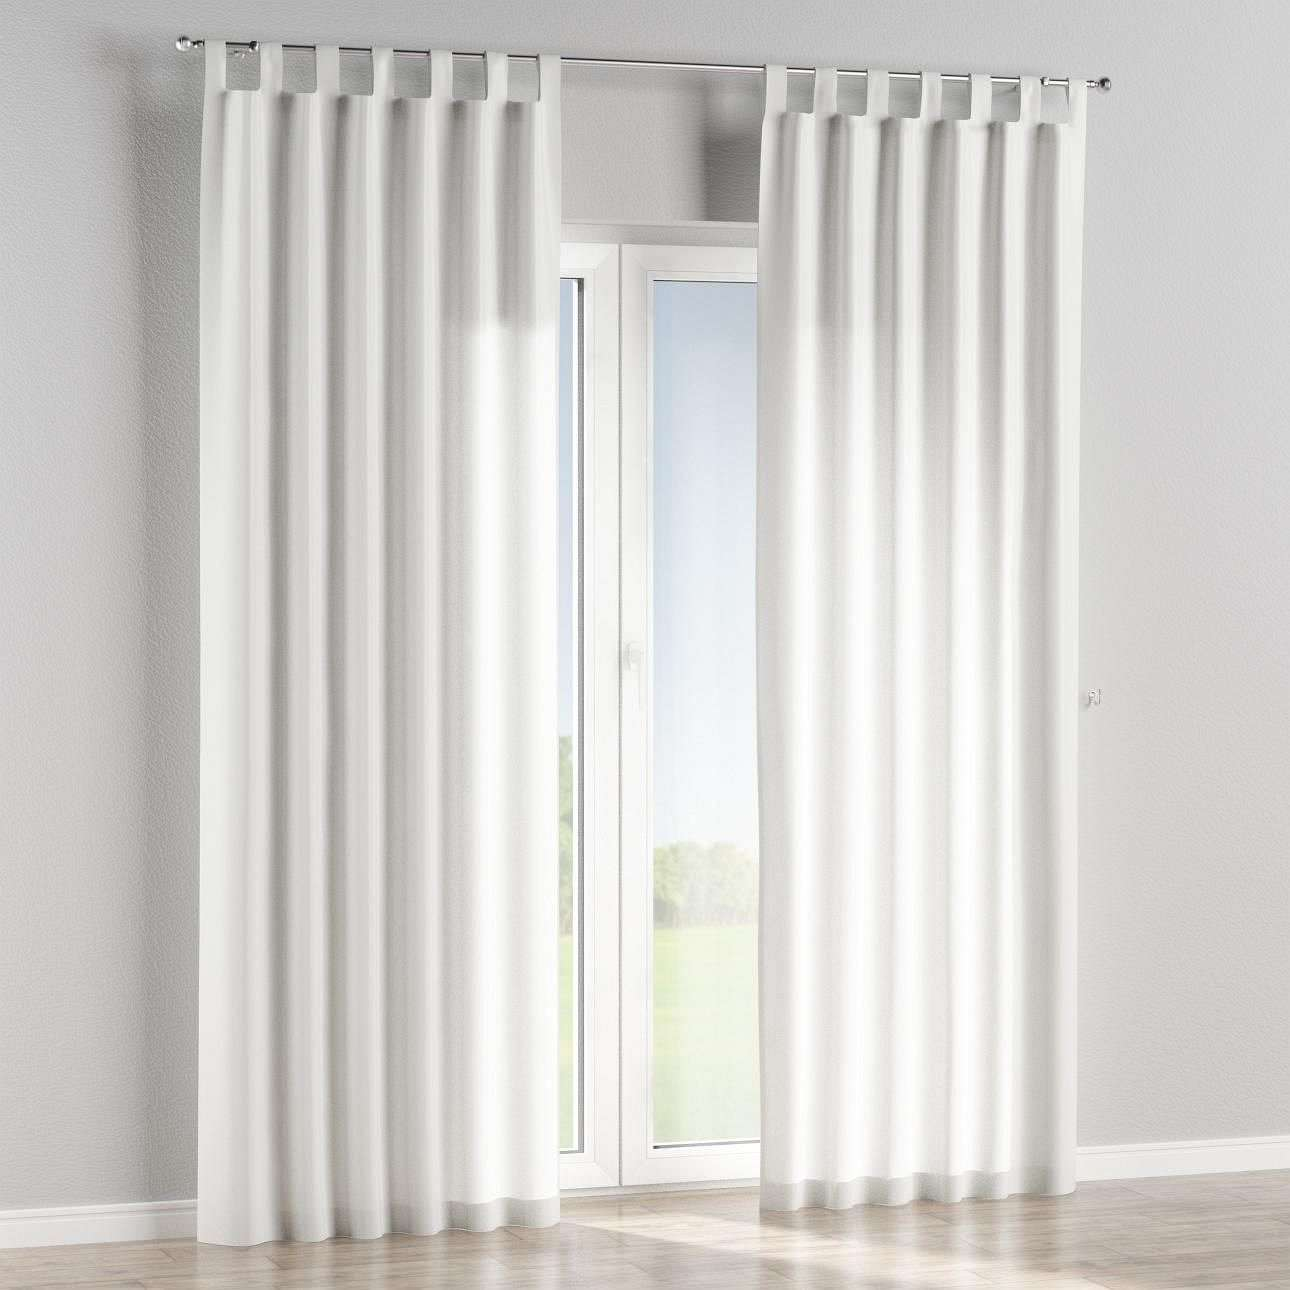 Tab top lined curtains in collection Mirella, fabric: 141-12